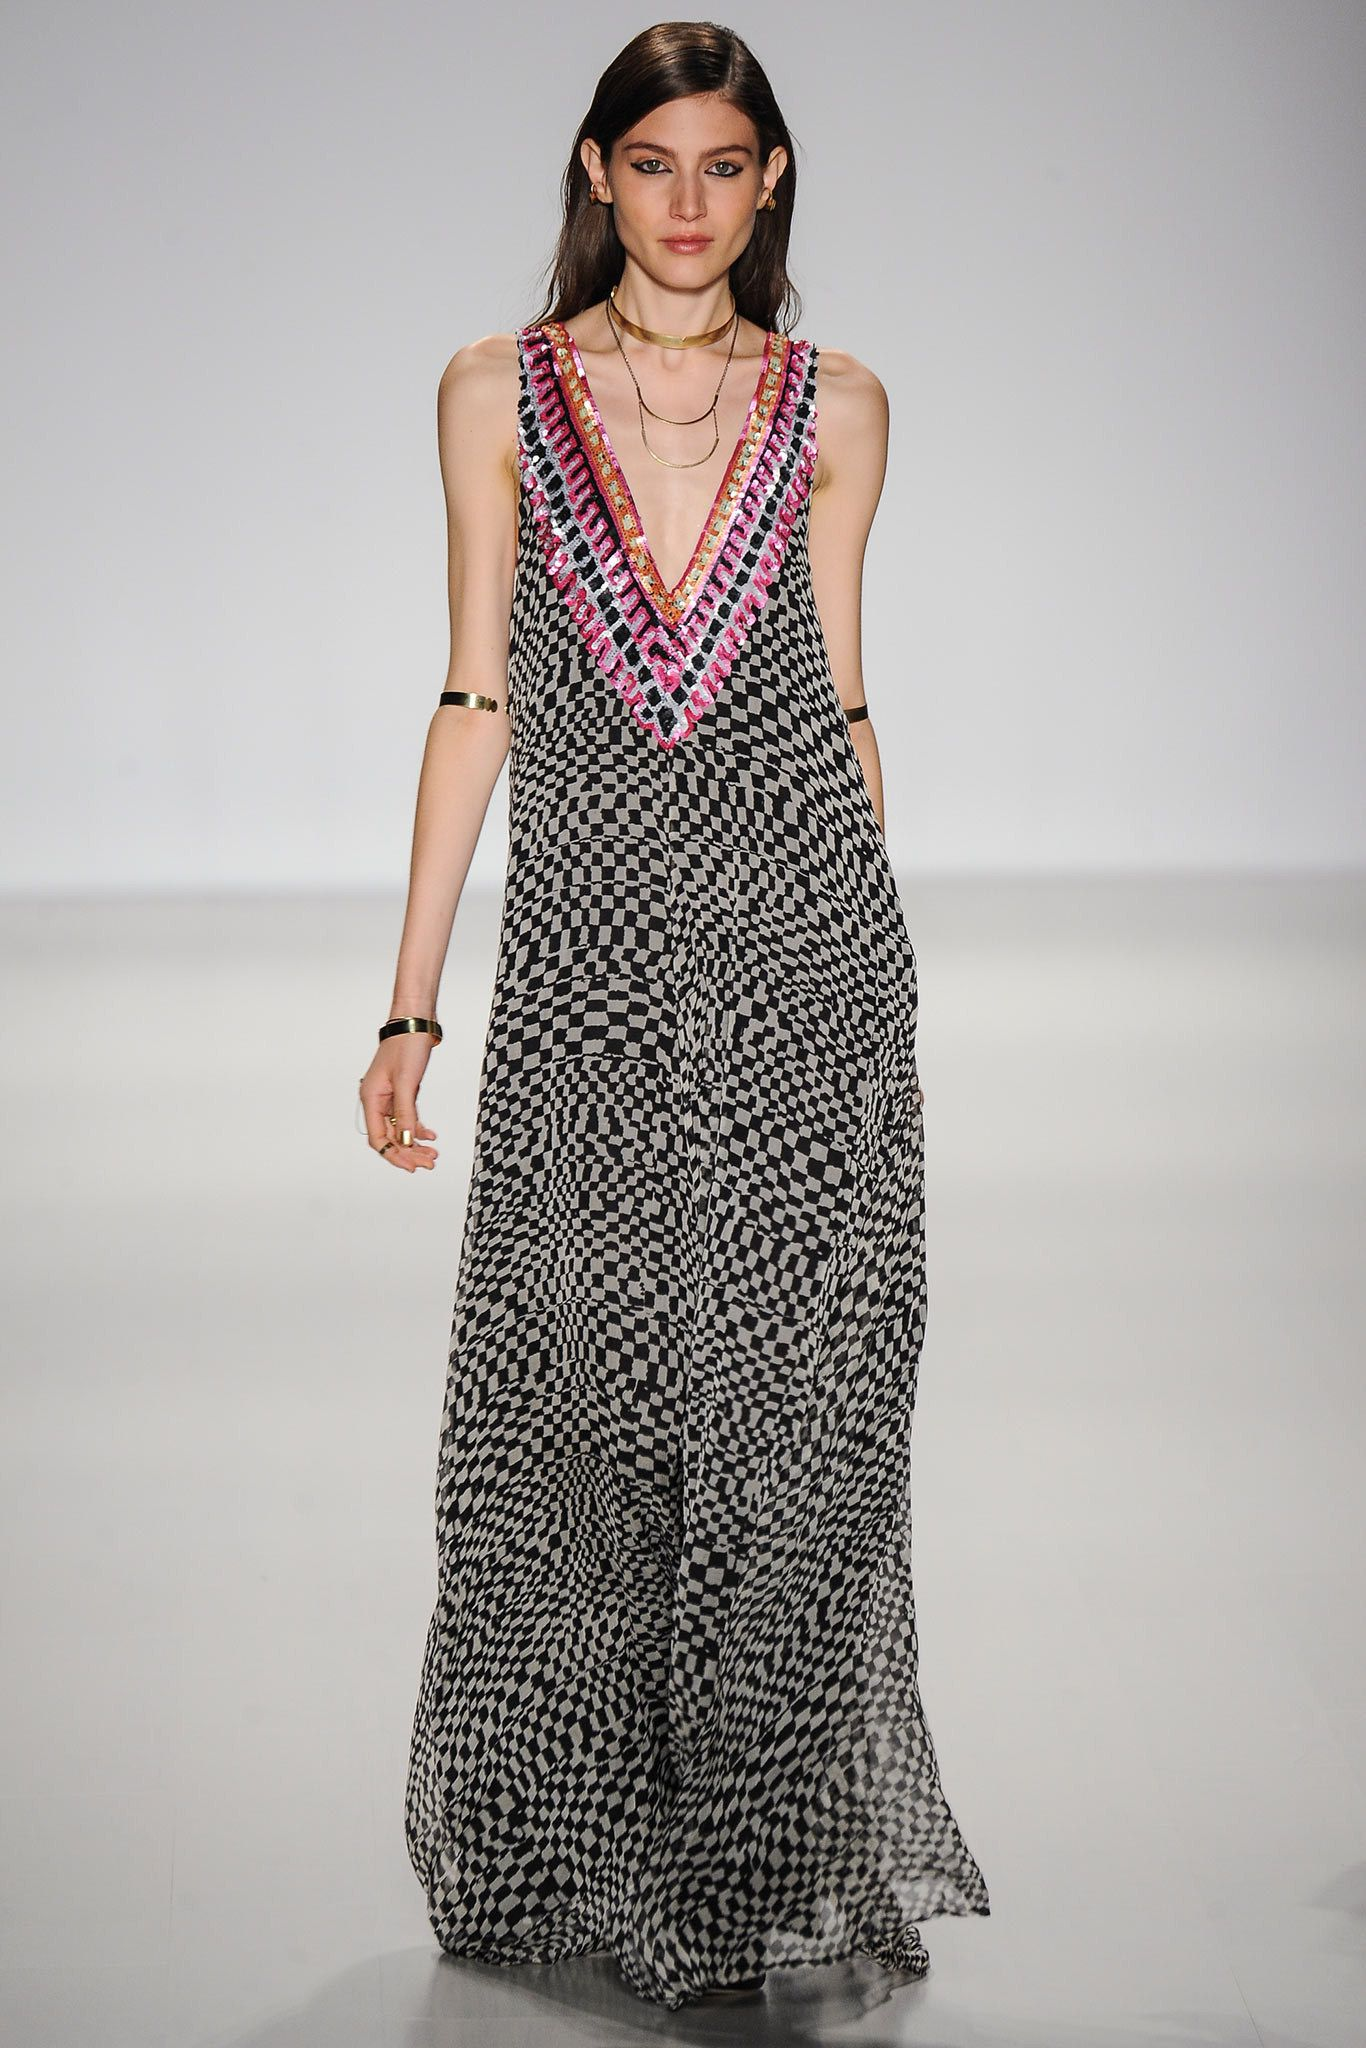 Mara Hoffman Fall 2014 Ready-to-Wear Fashion Show